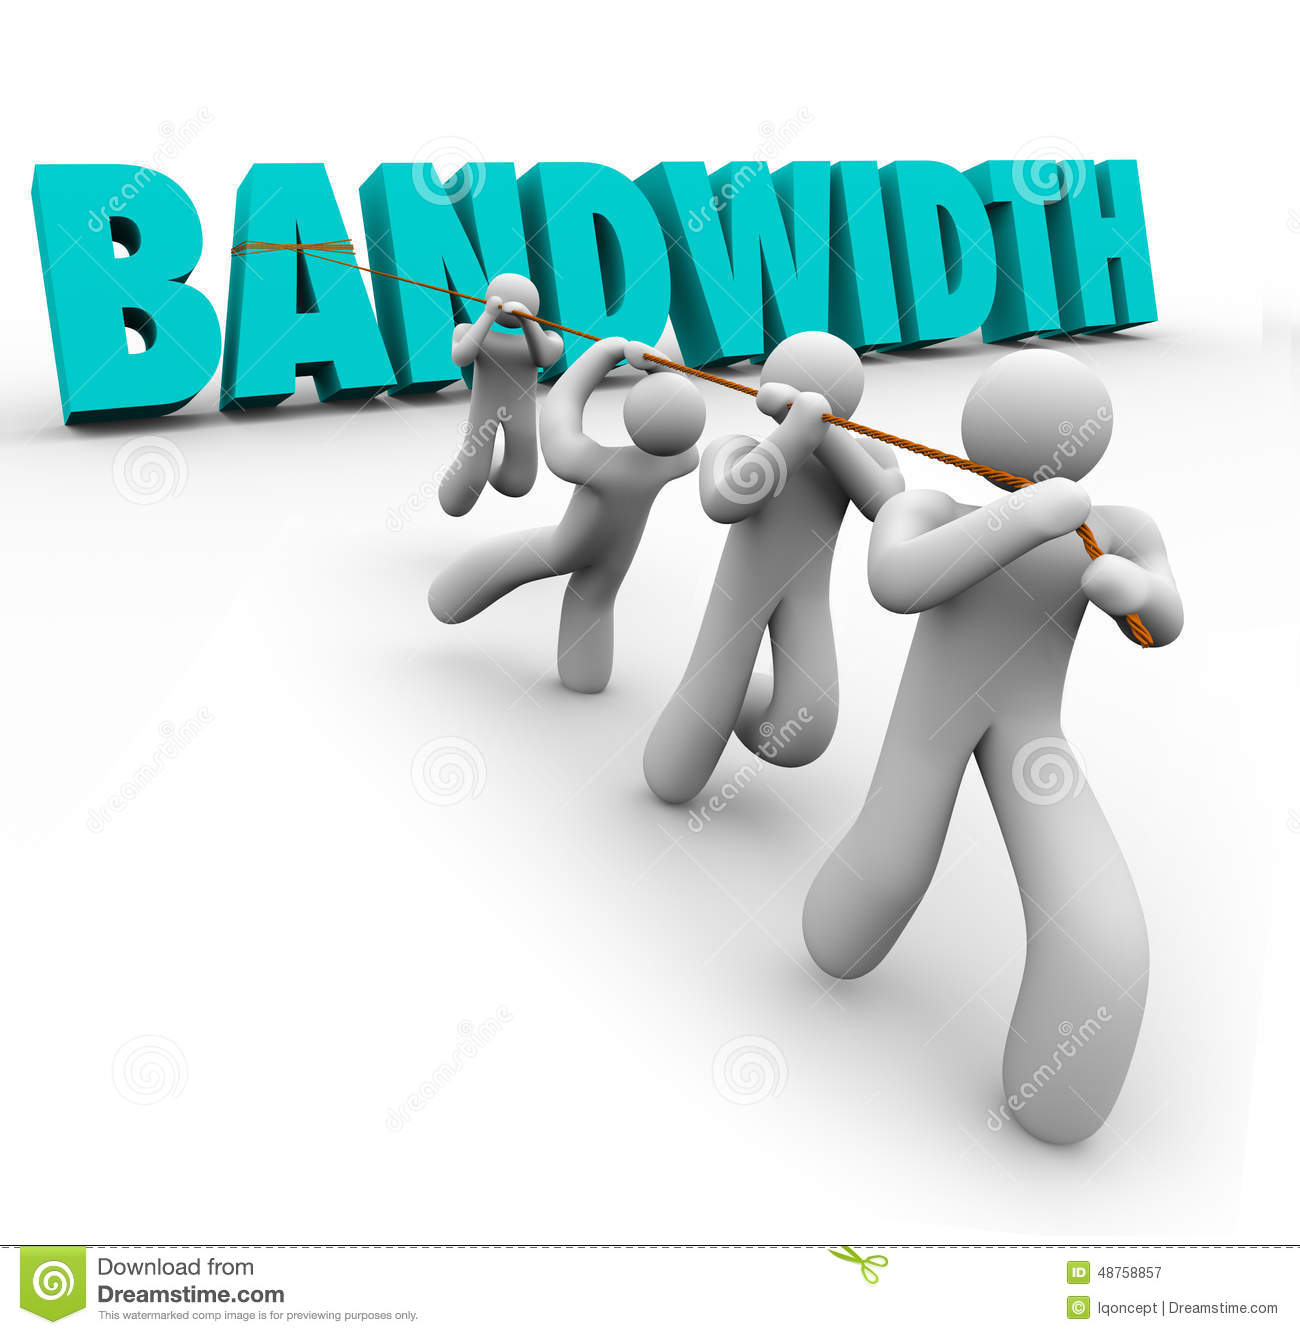 bandwidth word pulled team resources limited ability time stock bandwidth word pulled team resources limited ability time